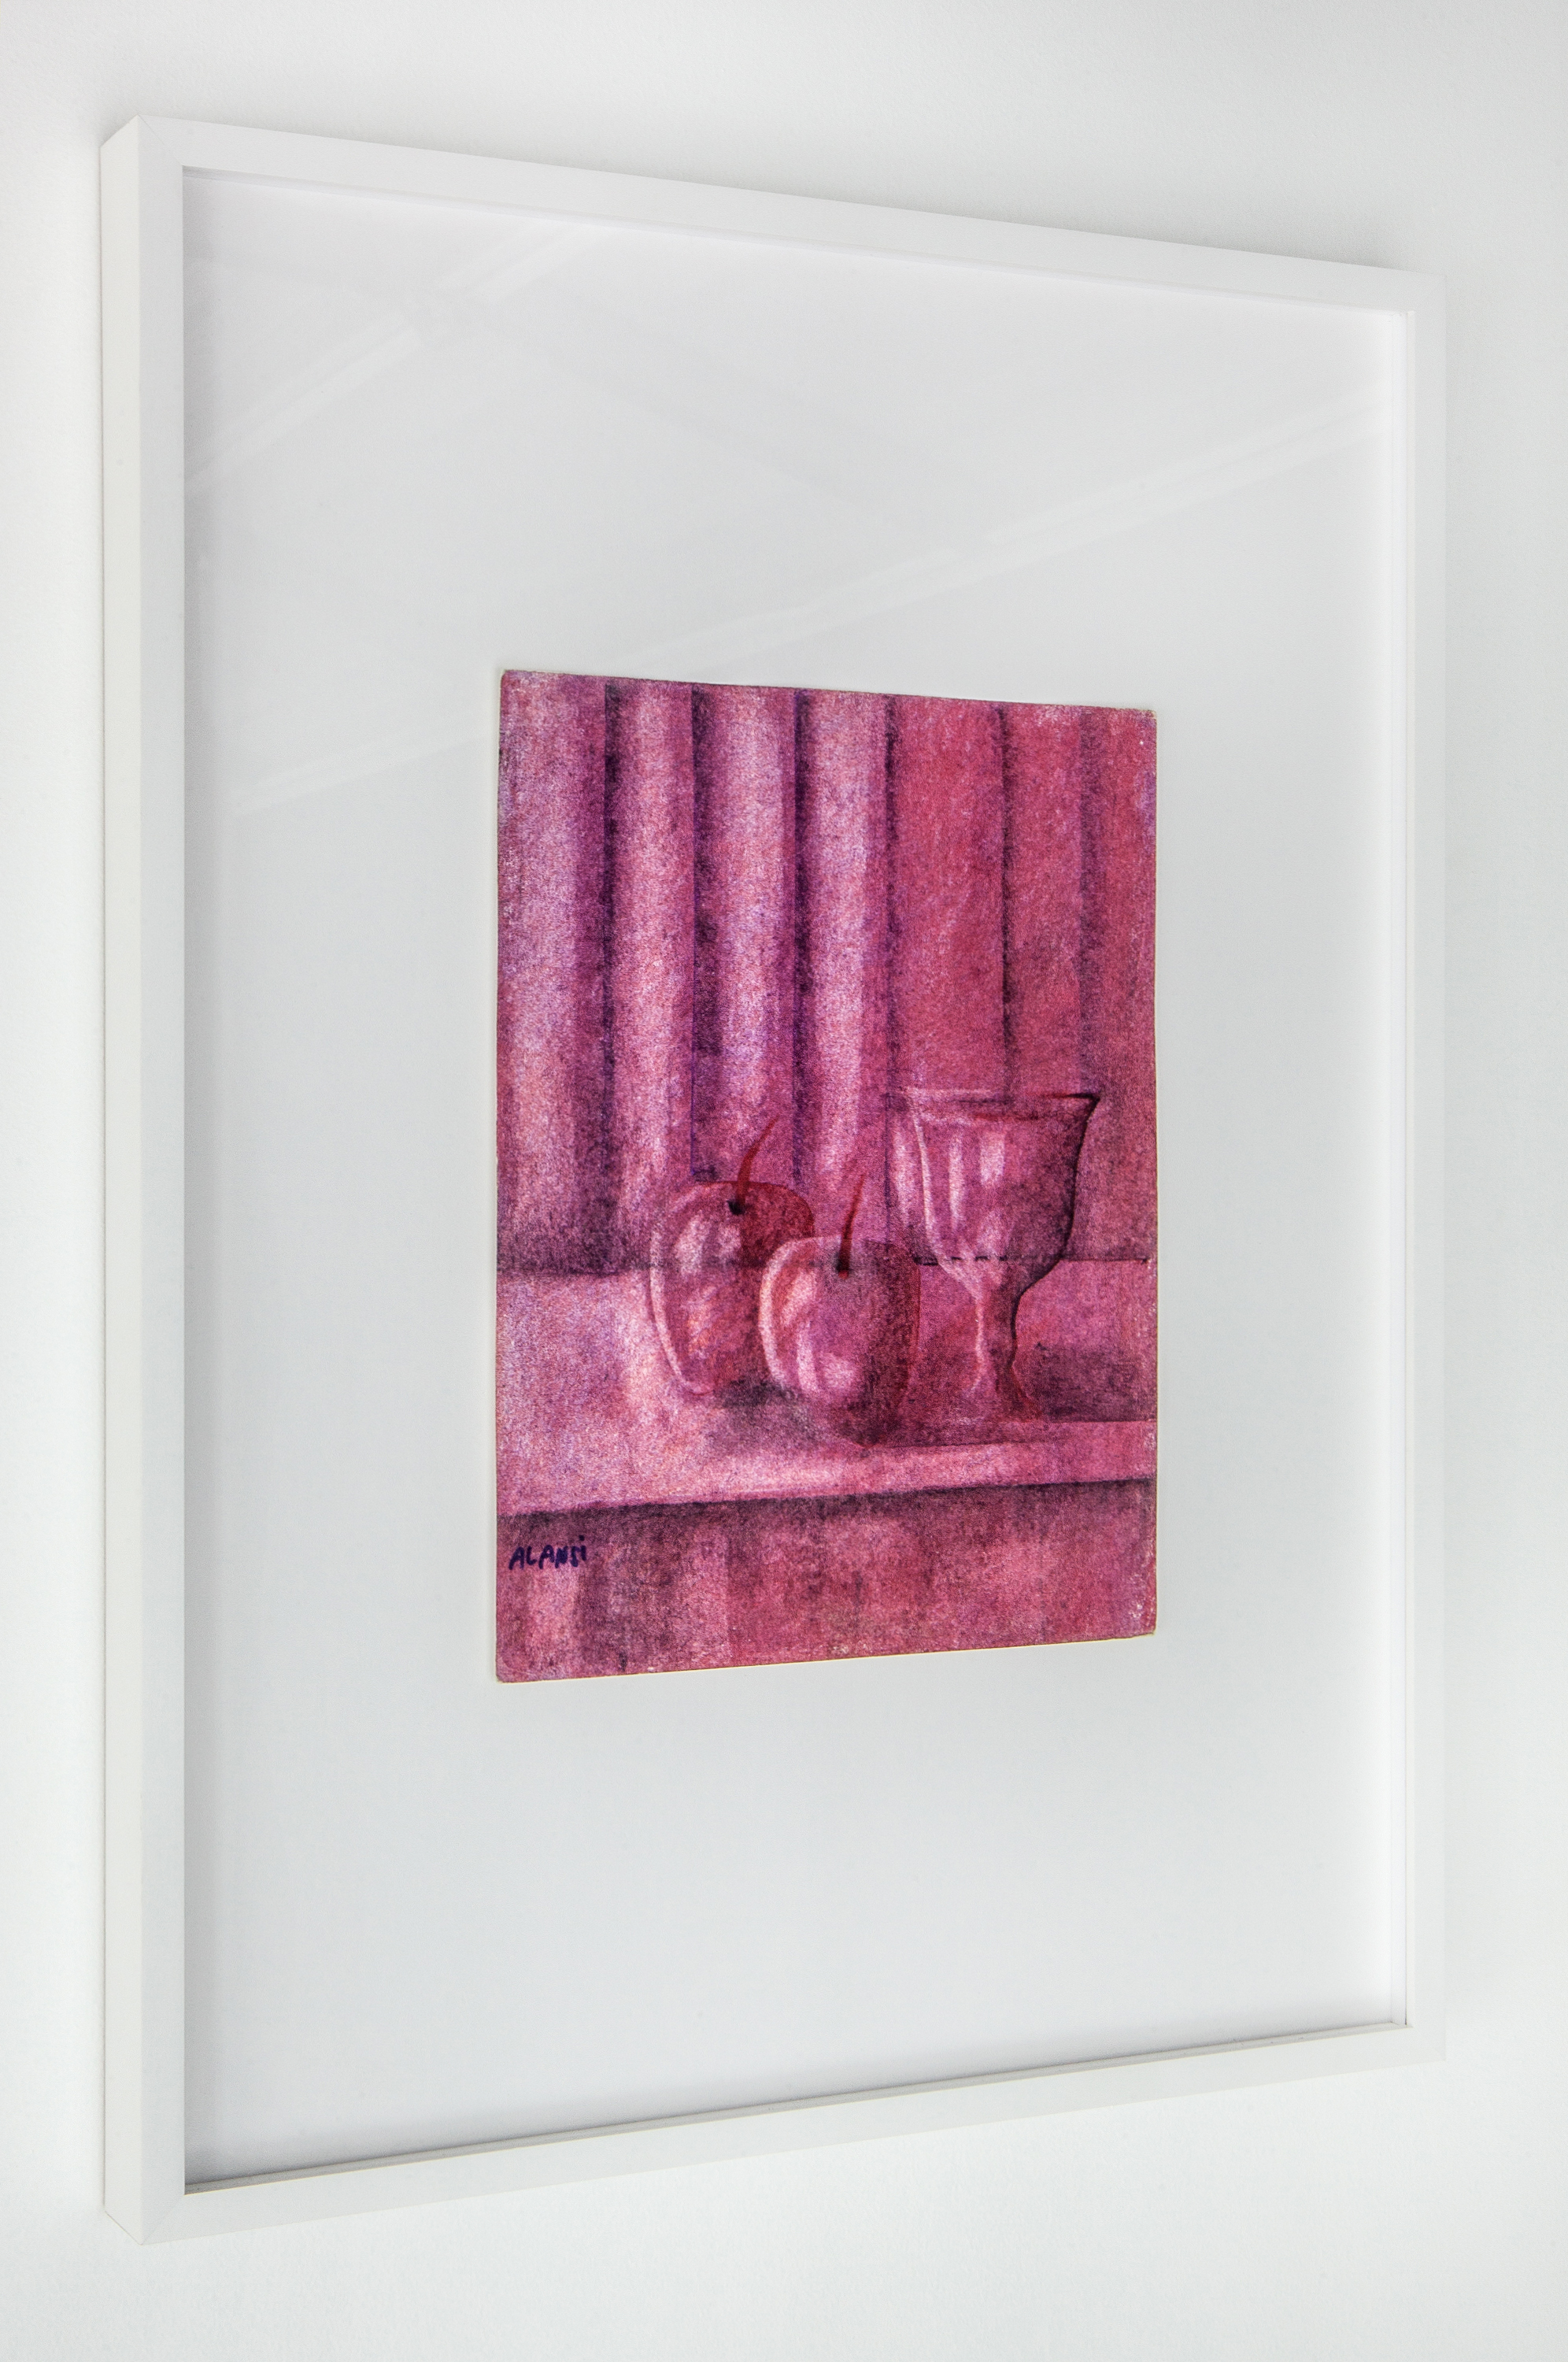 Ansi,  Still life of apples and a cup against a striped background , 2016.   Oil pastel on paper, 12h x 9w in.  Photo: Daniel Hojnacki.